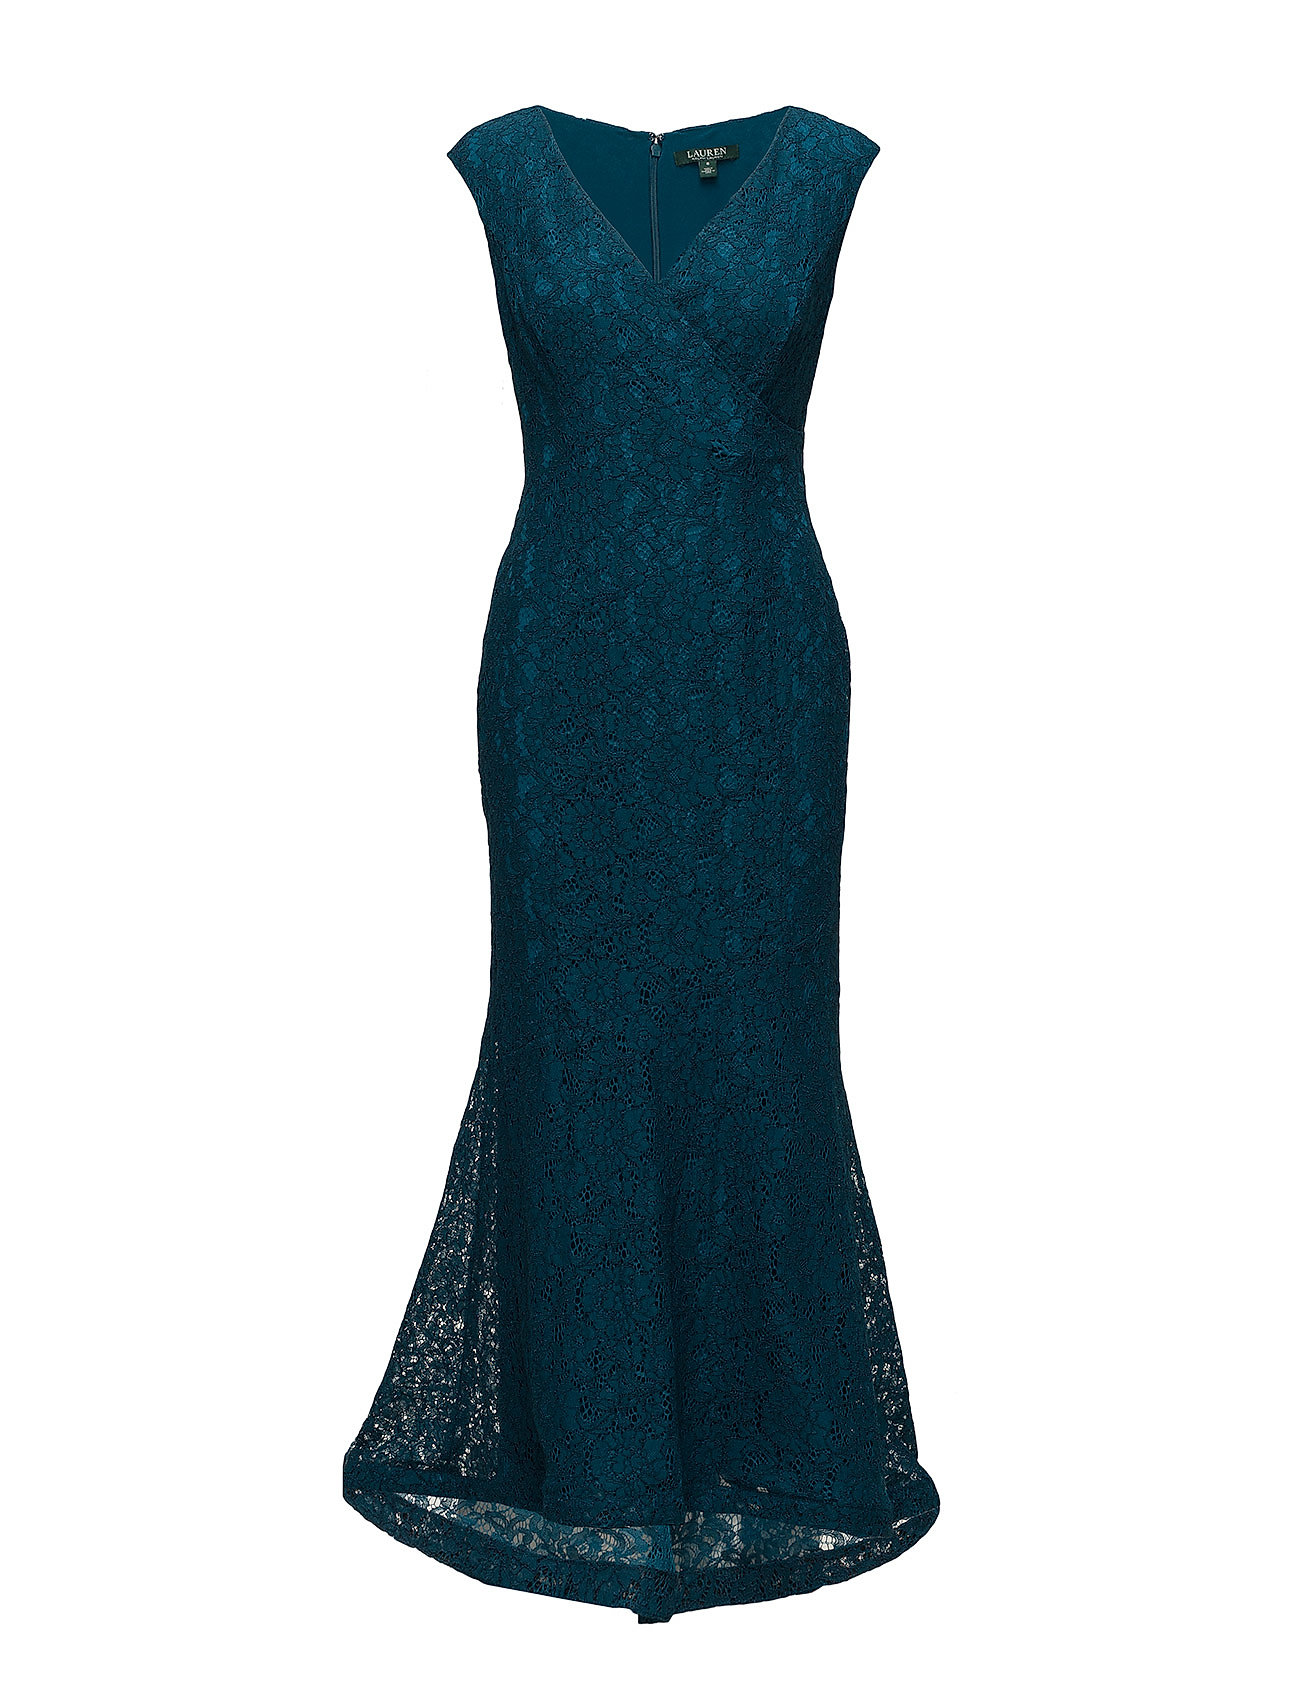 Floral Lace Gown (French Teal/frenc) (£135) - Lauren Ralph Lauren ...